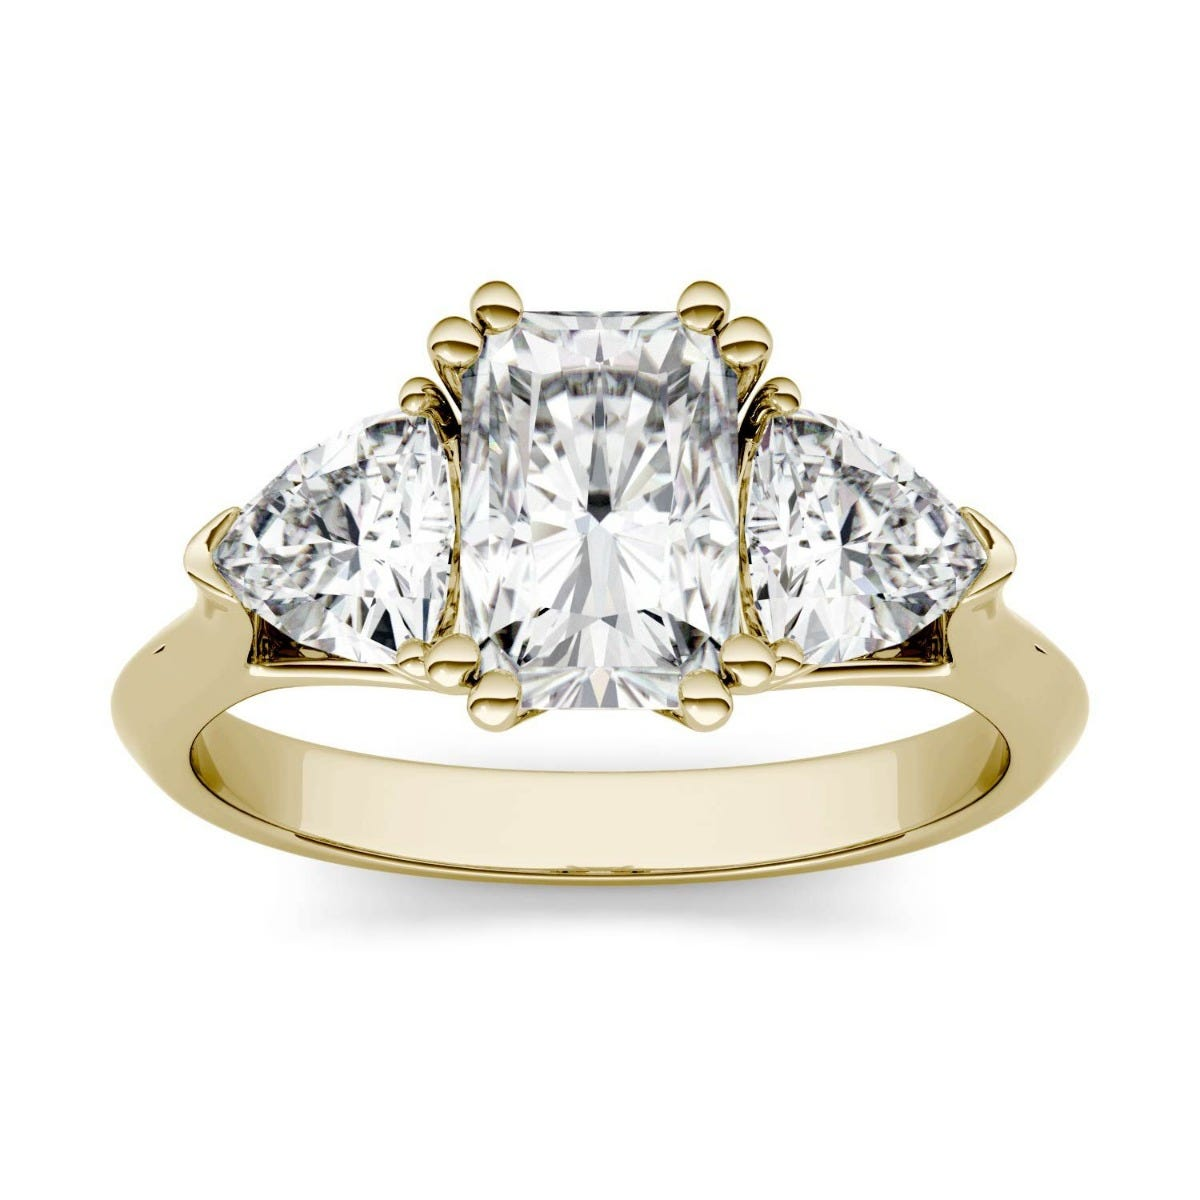 Forever One Radiant & Trillion Colorless Moissanite Three Stone Engagement Ring in 14K Yellow Gold